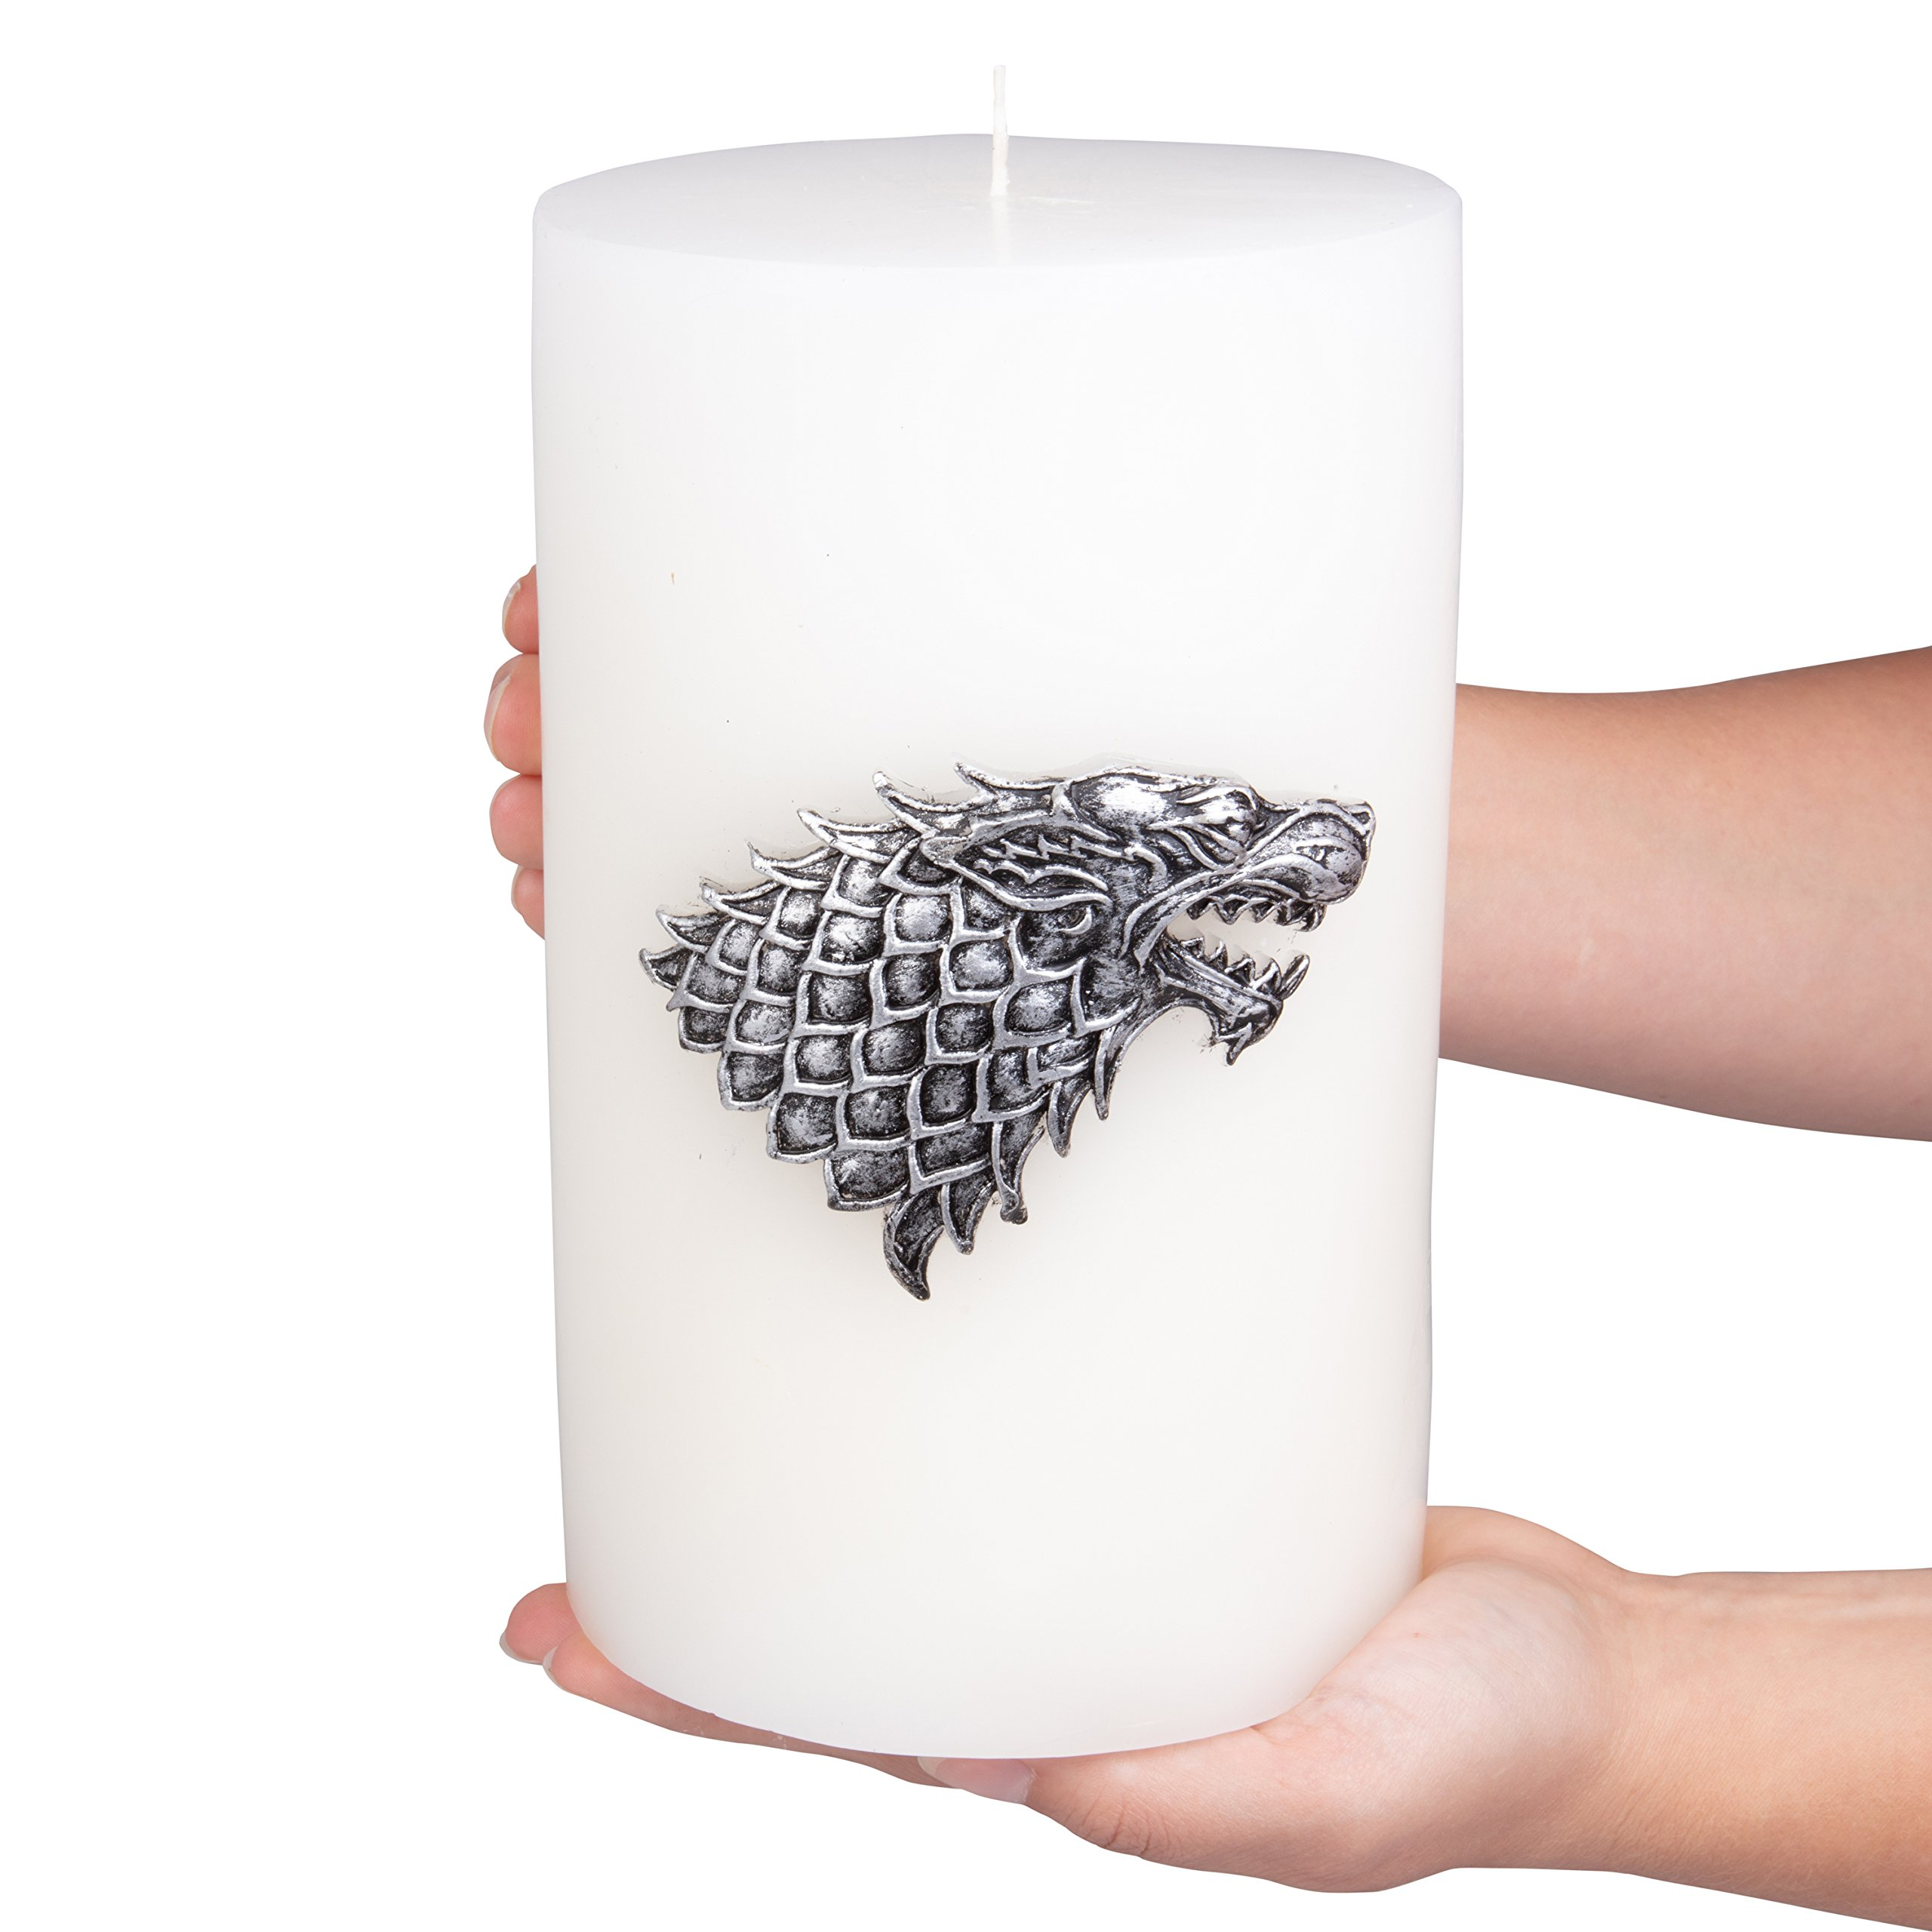 Game of Thrones Candle - Large House Stark Insignia Sculpted Pillar Candle - Perfect for GoT Fans - Unscented - 8''h by Game of Thrones (Image #6)